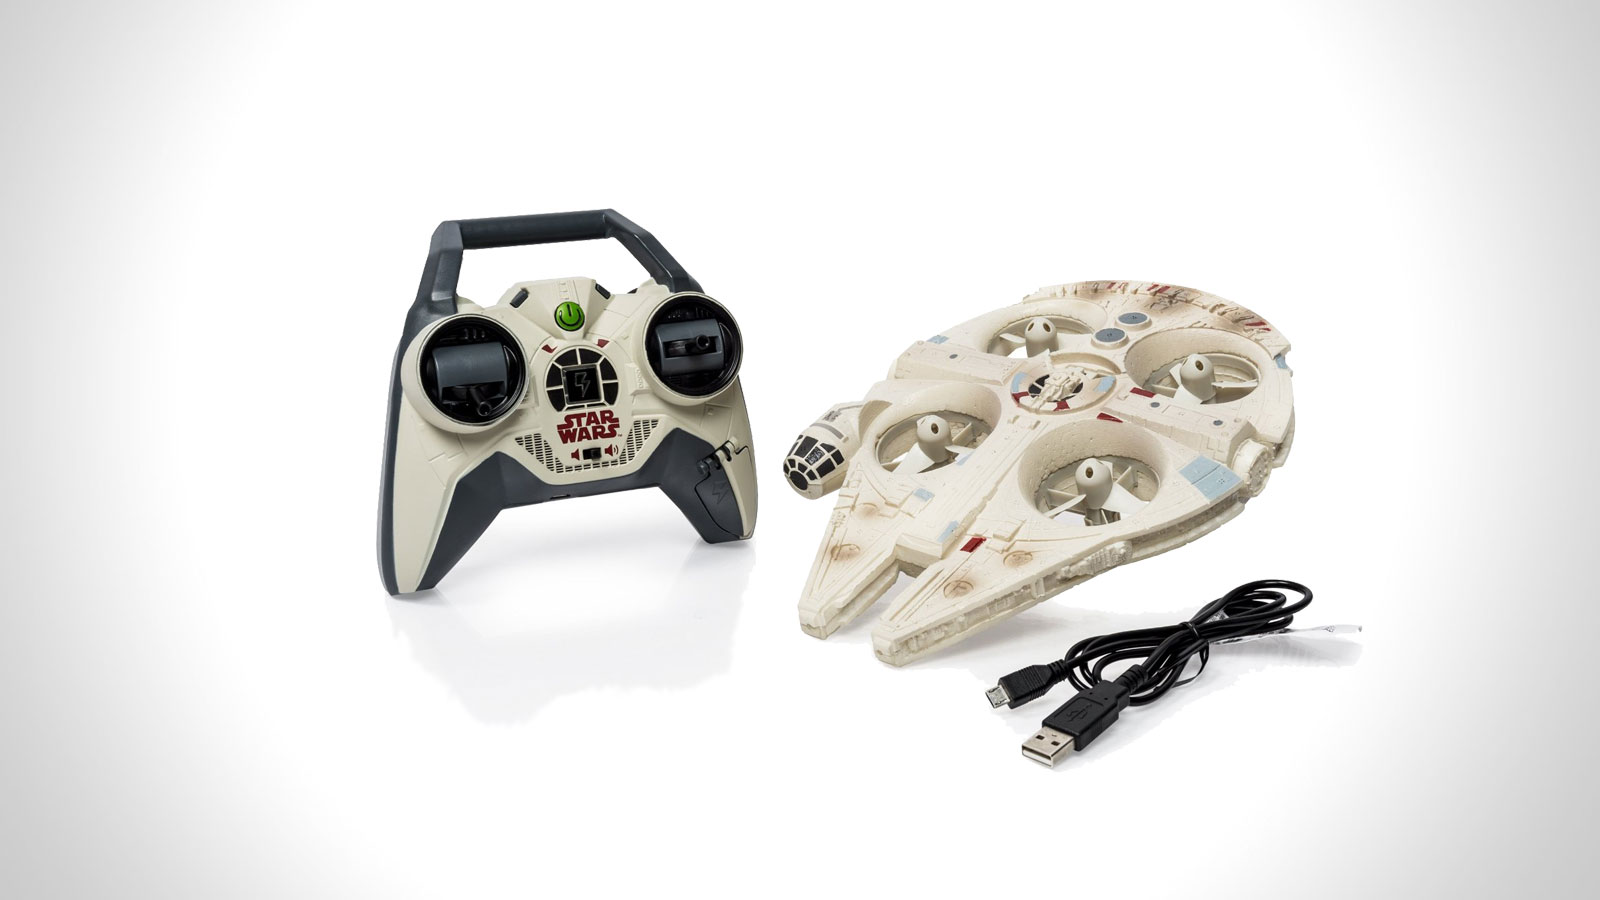 Star Wars Remote Control Millennium Falcon Quad   gifts for men   the best star wars gifts